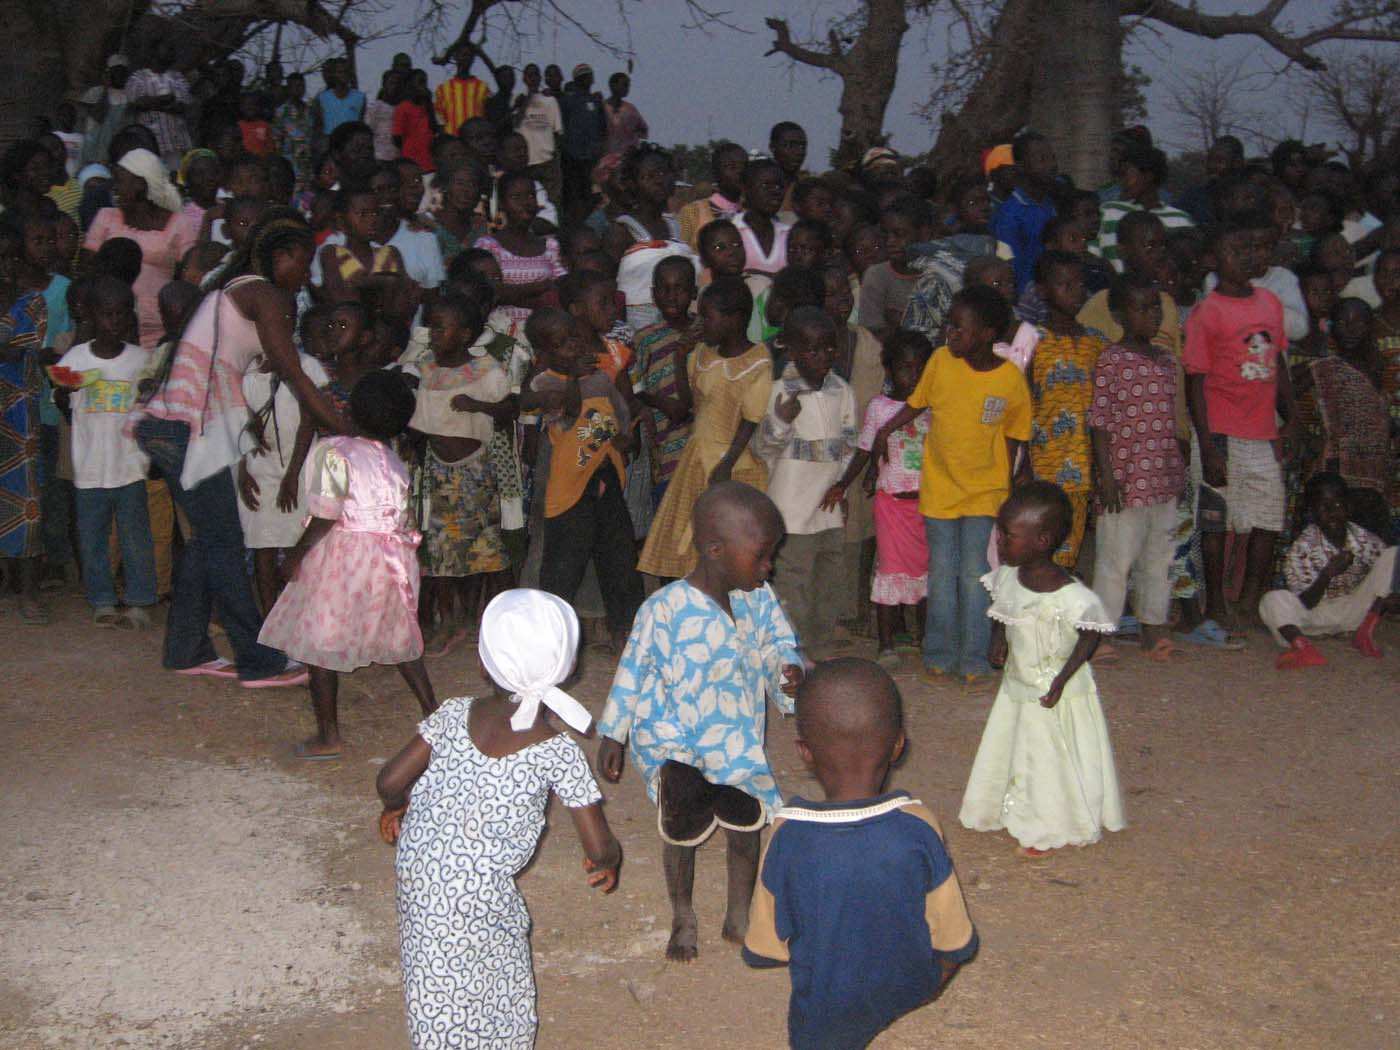 Children joining in the dancing